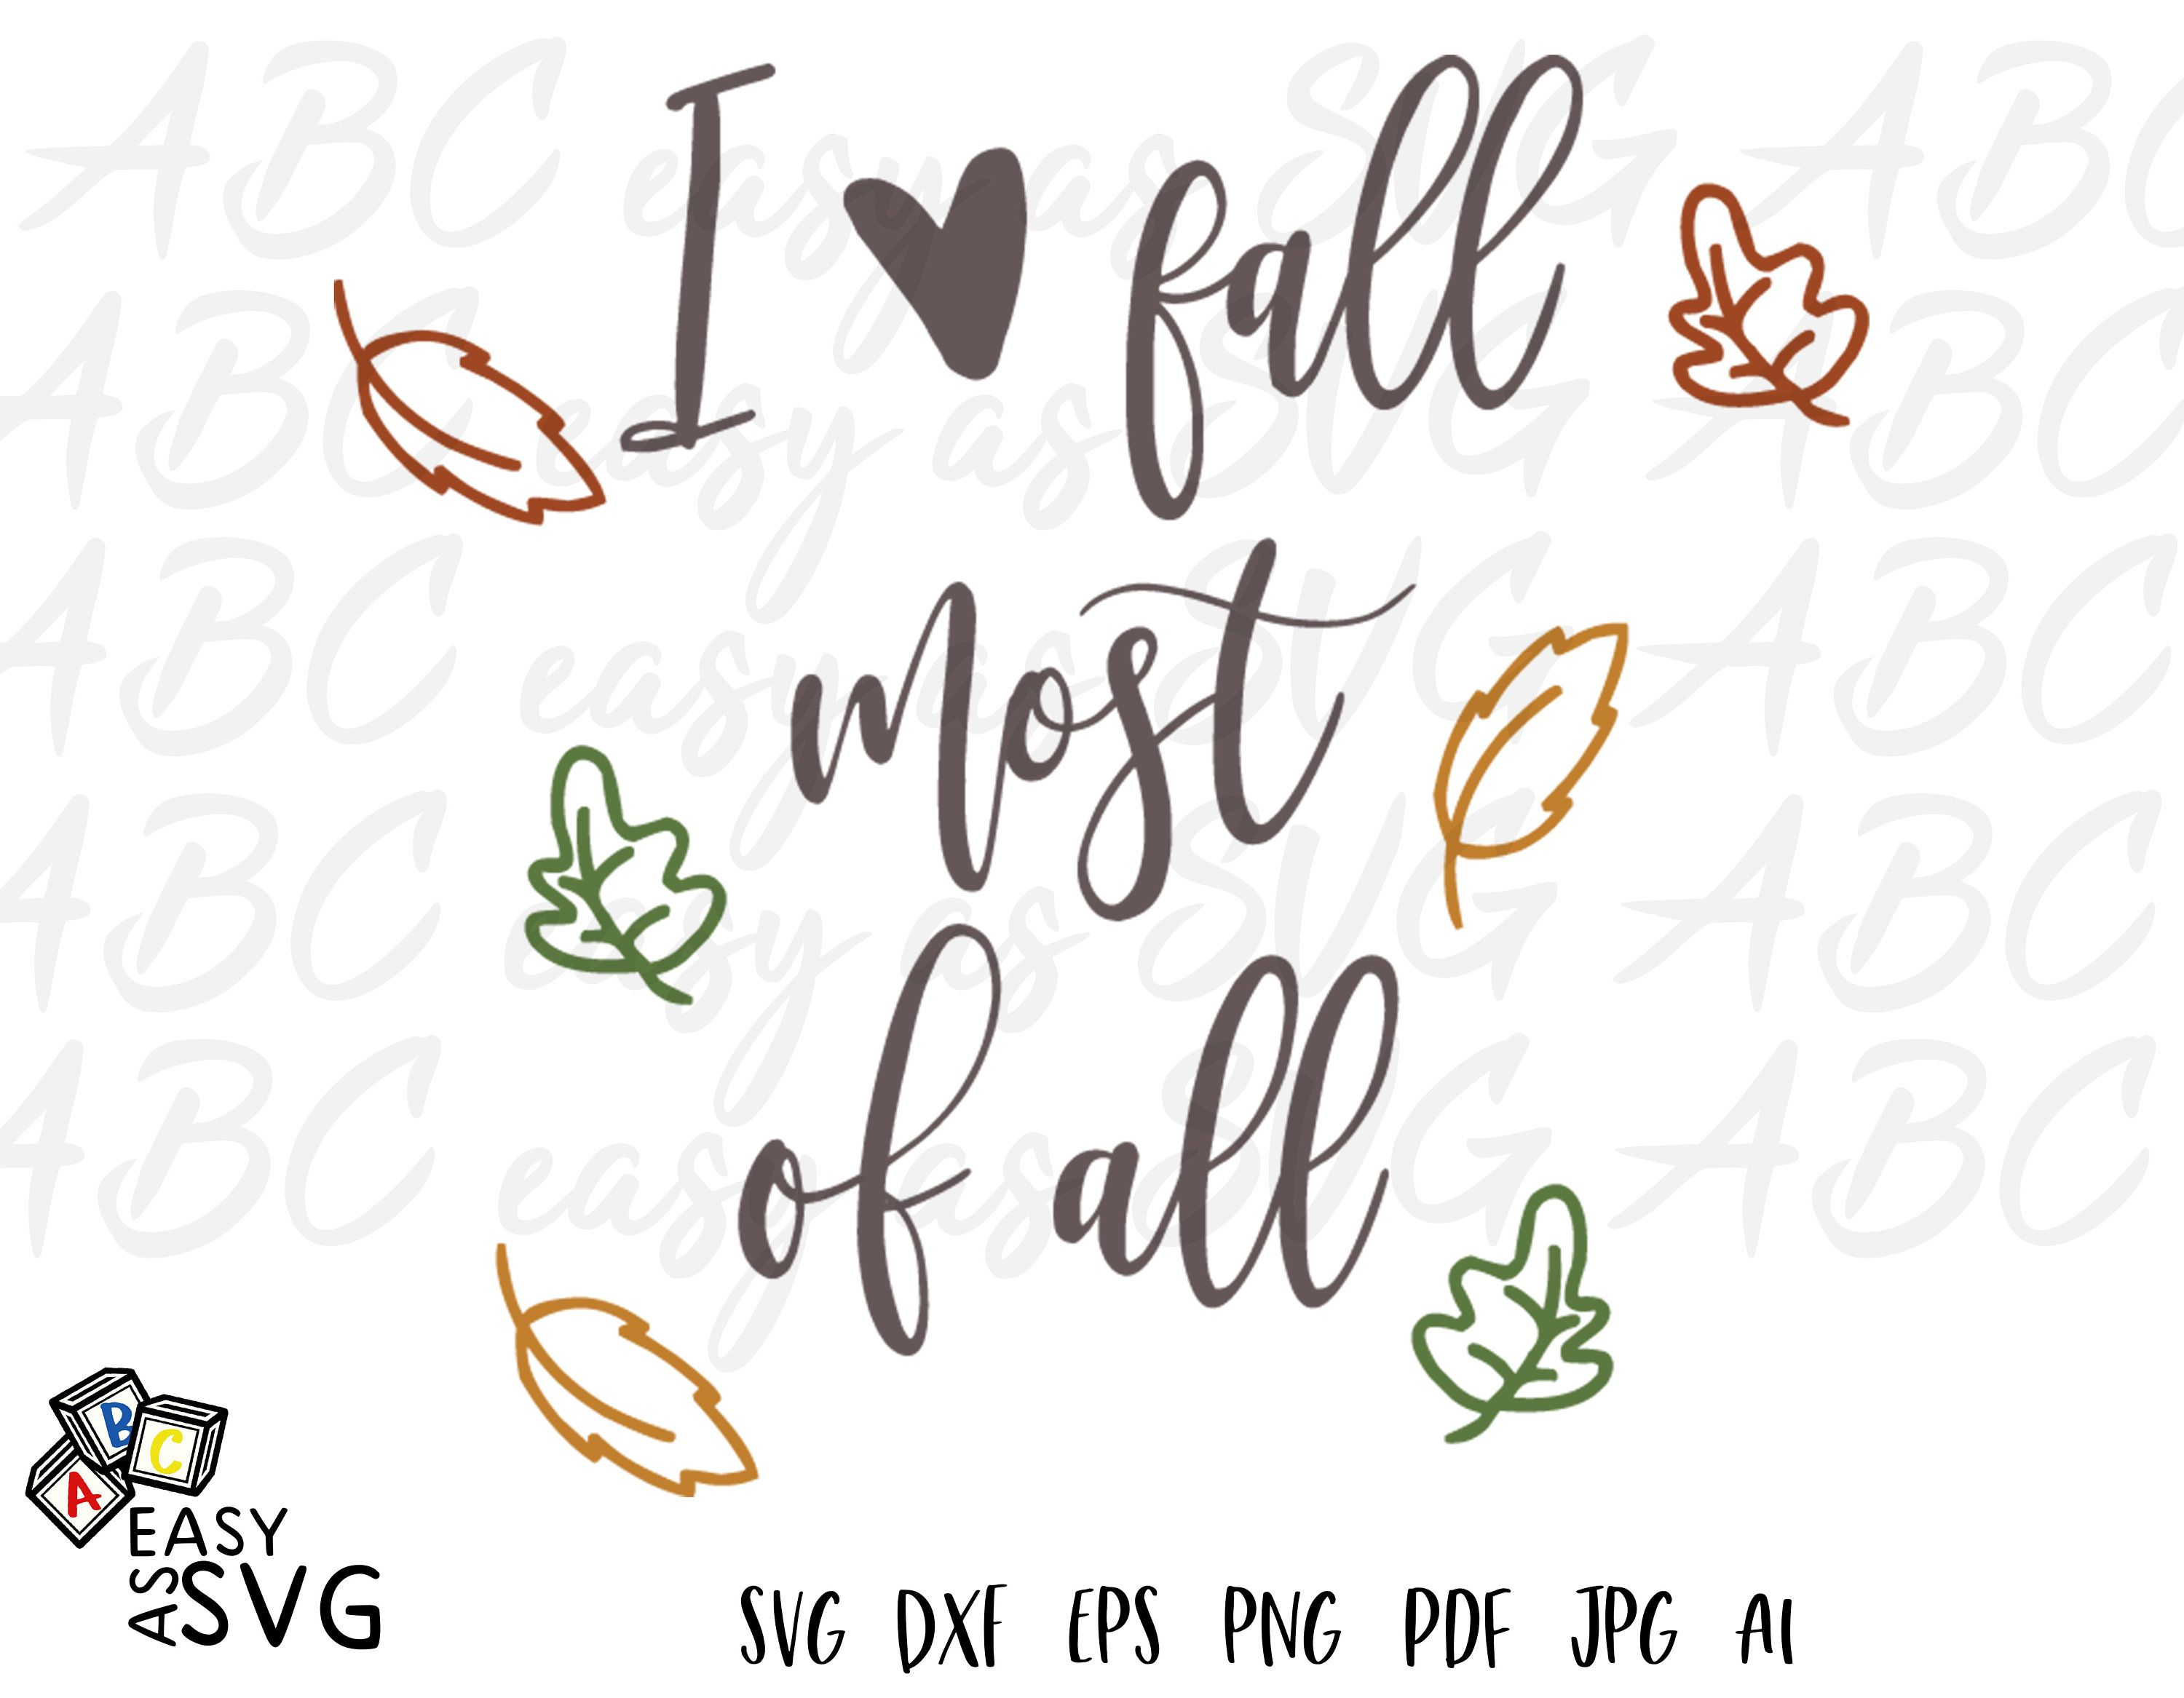 Download Pin on SVG silhouette and Cricut designs